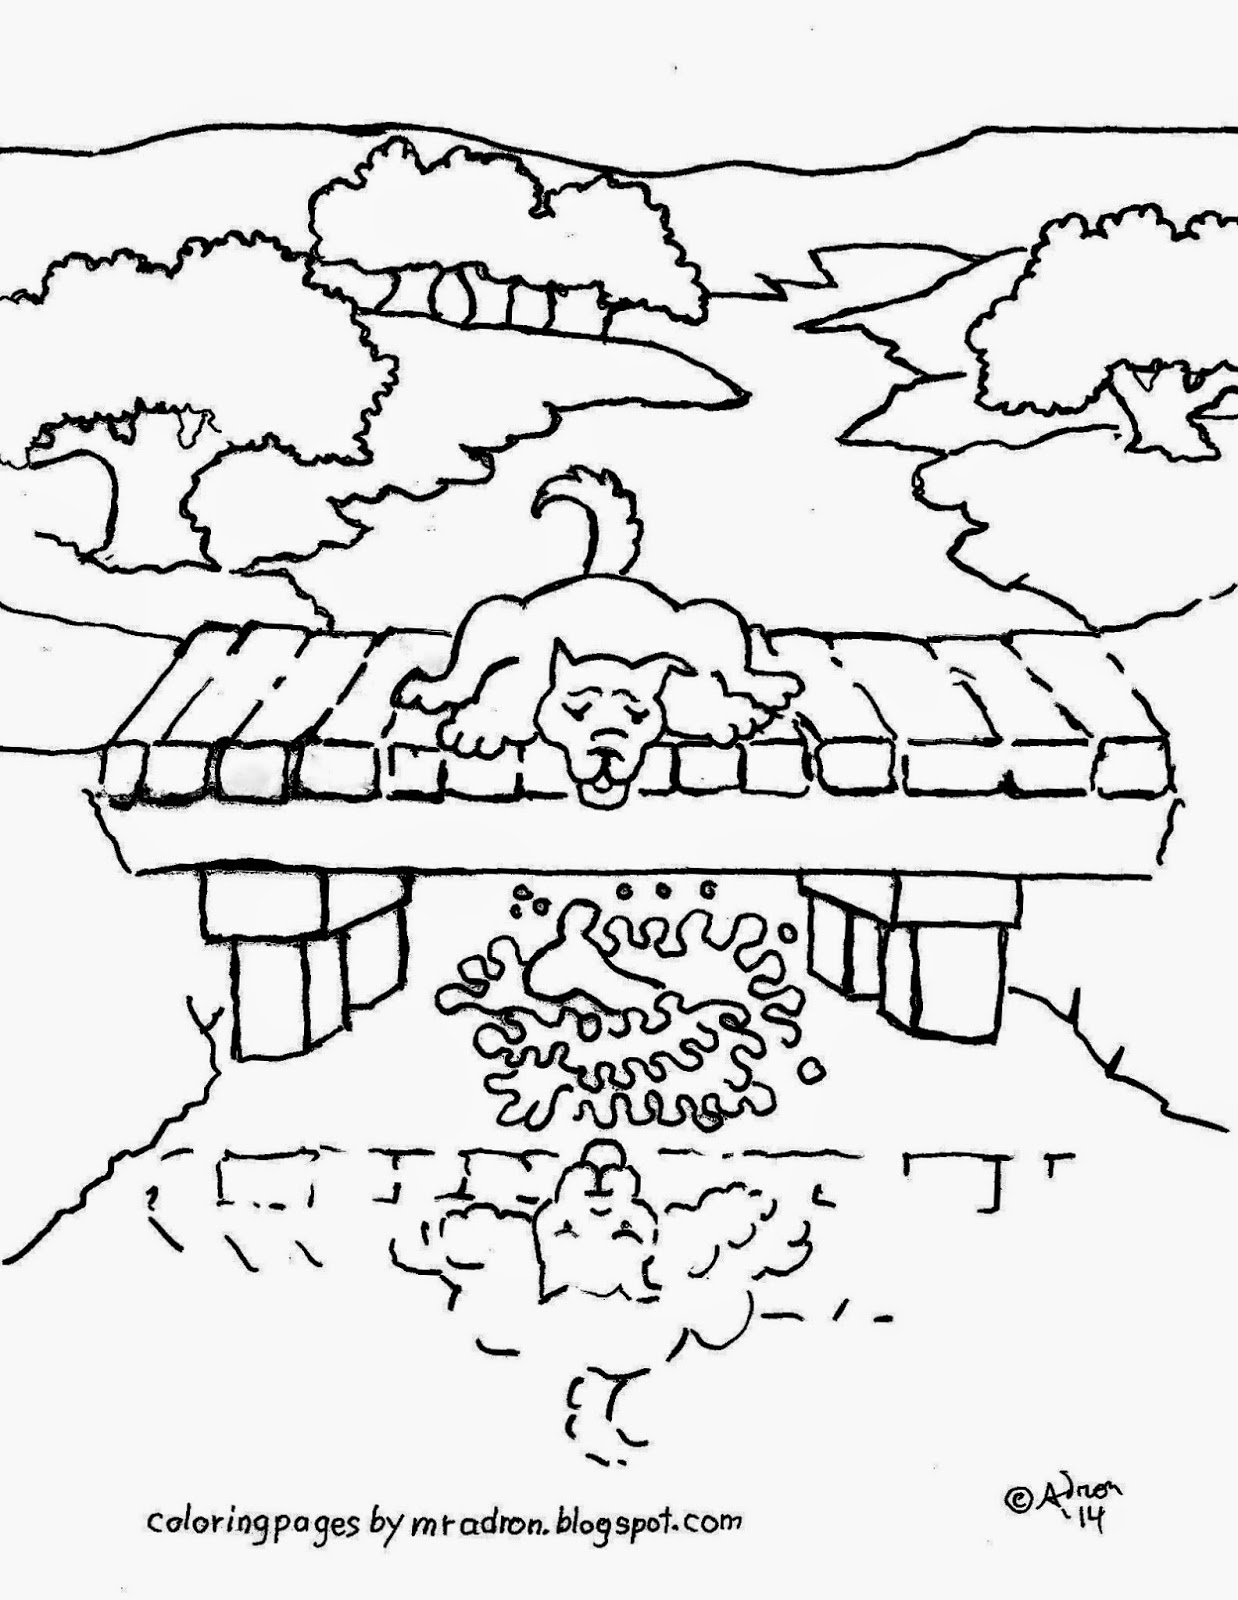 Coloring Pages For Kids By Mr Adron Aesop 39 S Fable The